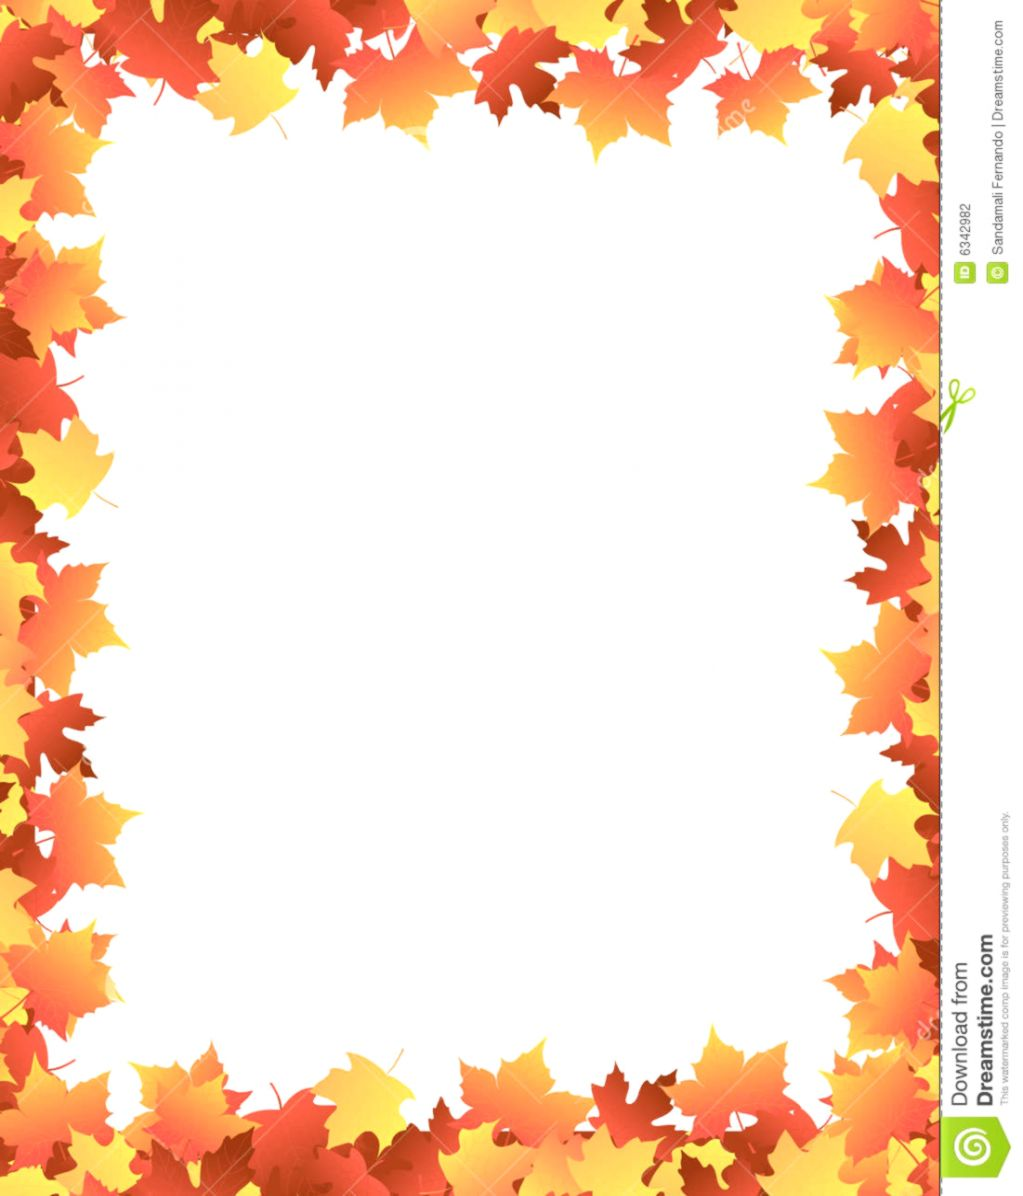 Autumn Leaves Border Clipart.